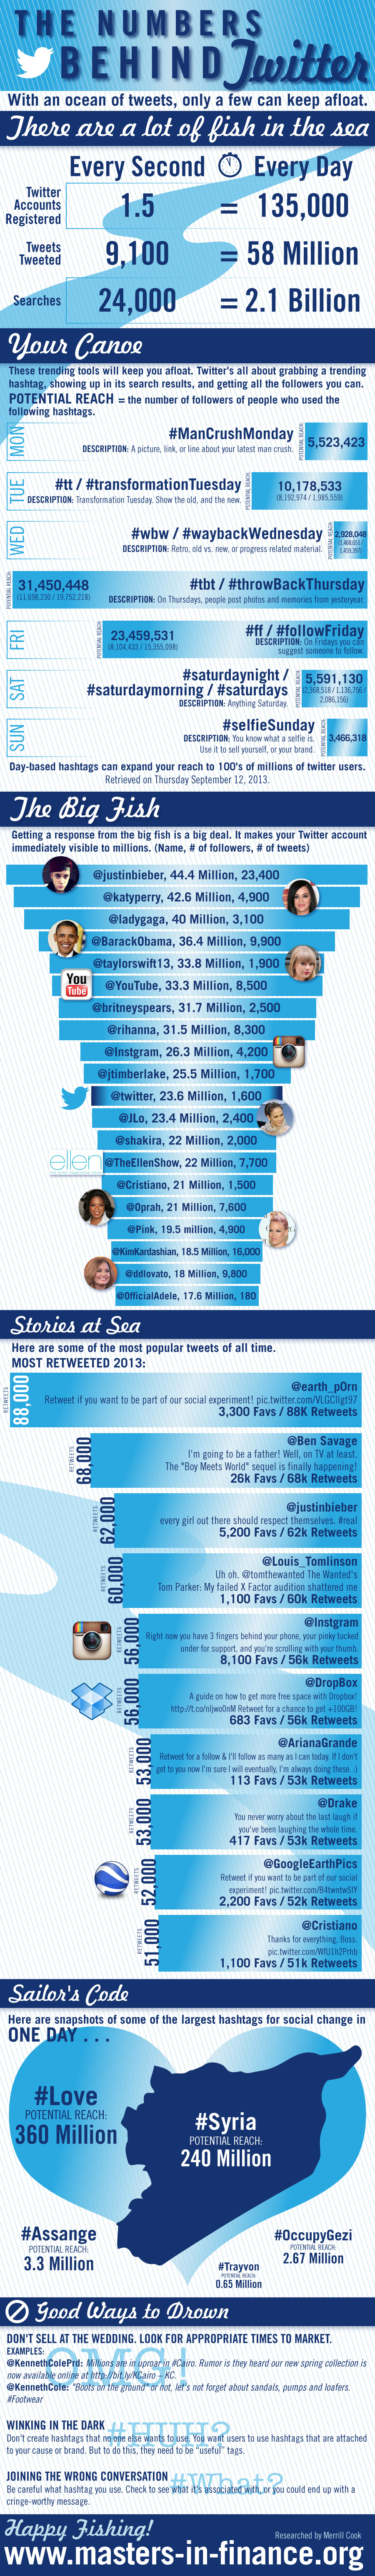 Twitter Growth Infographic